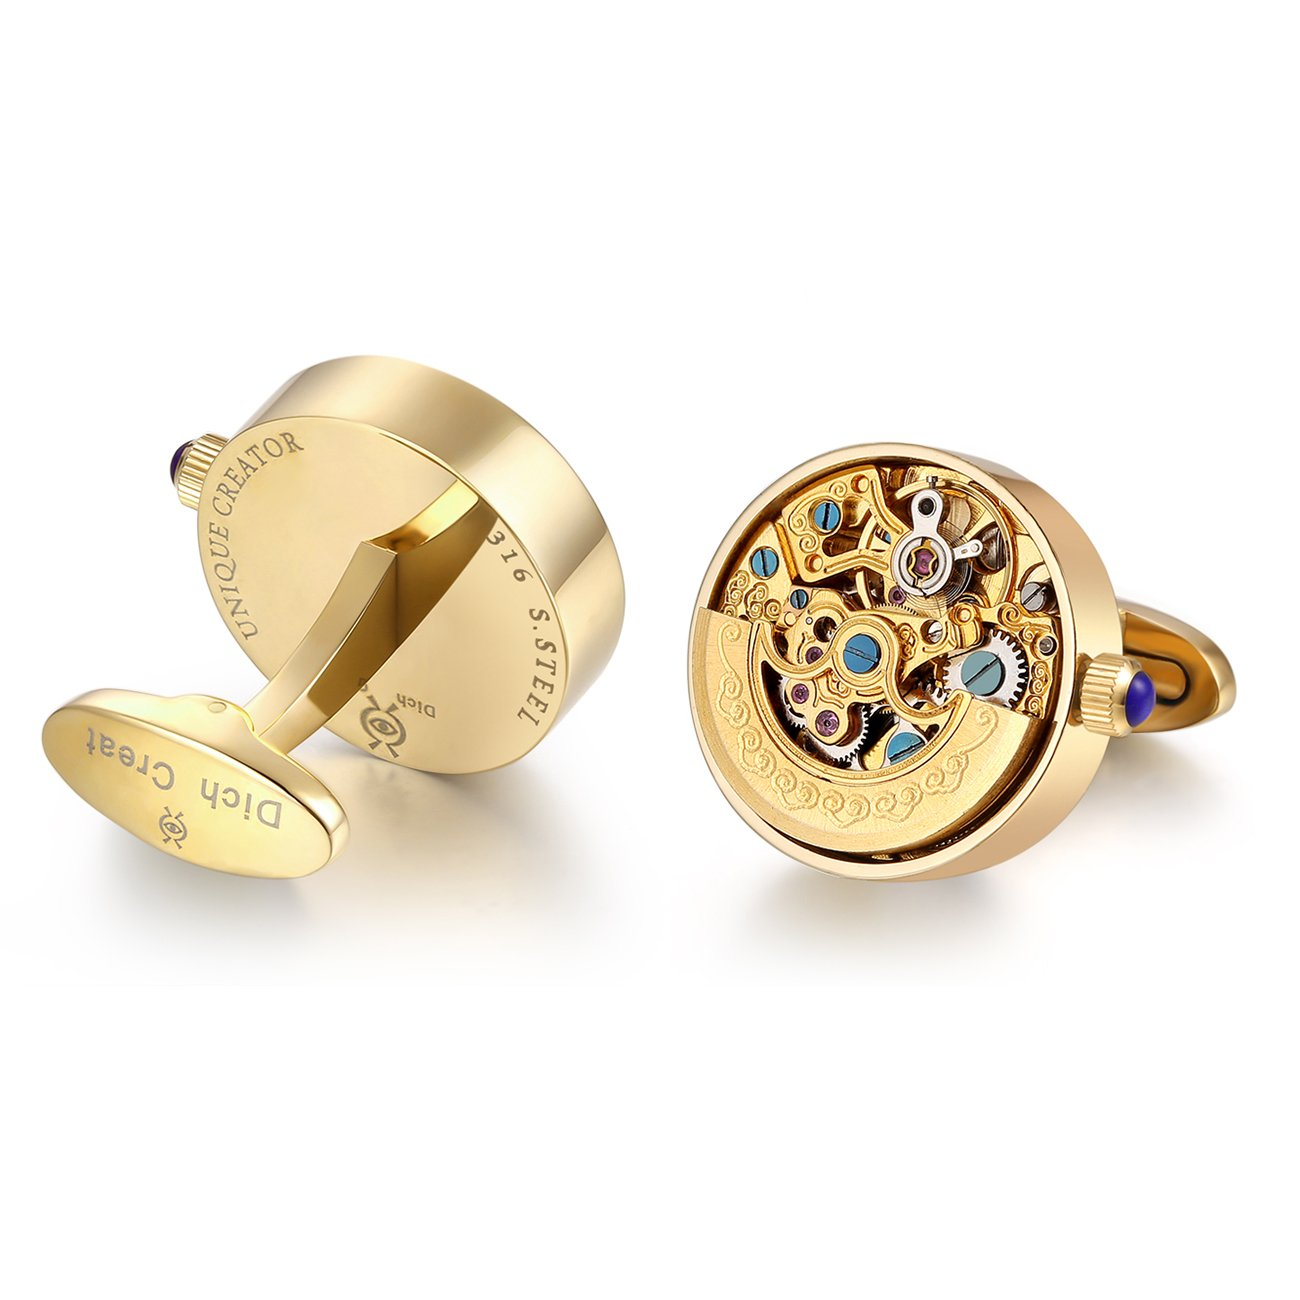 Dich Creat Stainless Steel Skeleton Automatic Golden Working Movement Cufflinks by Dich Creat